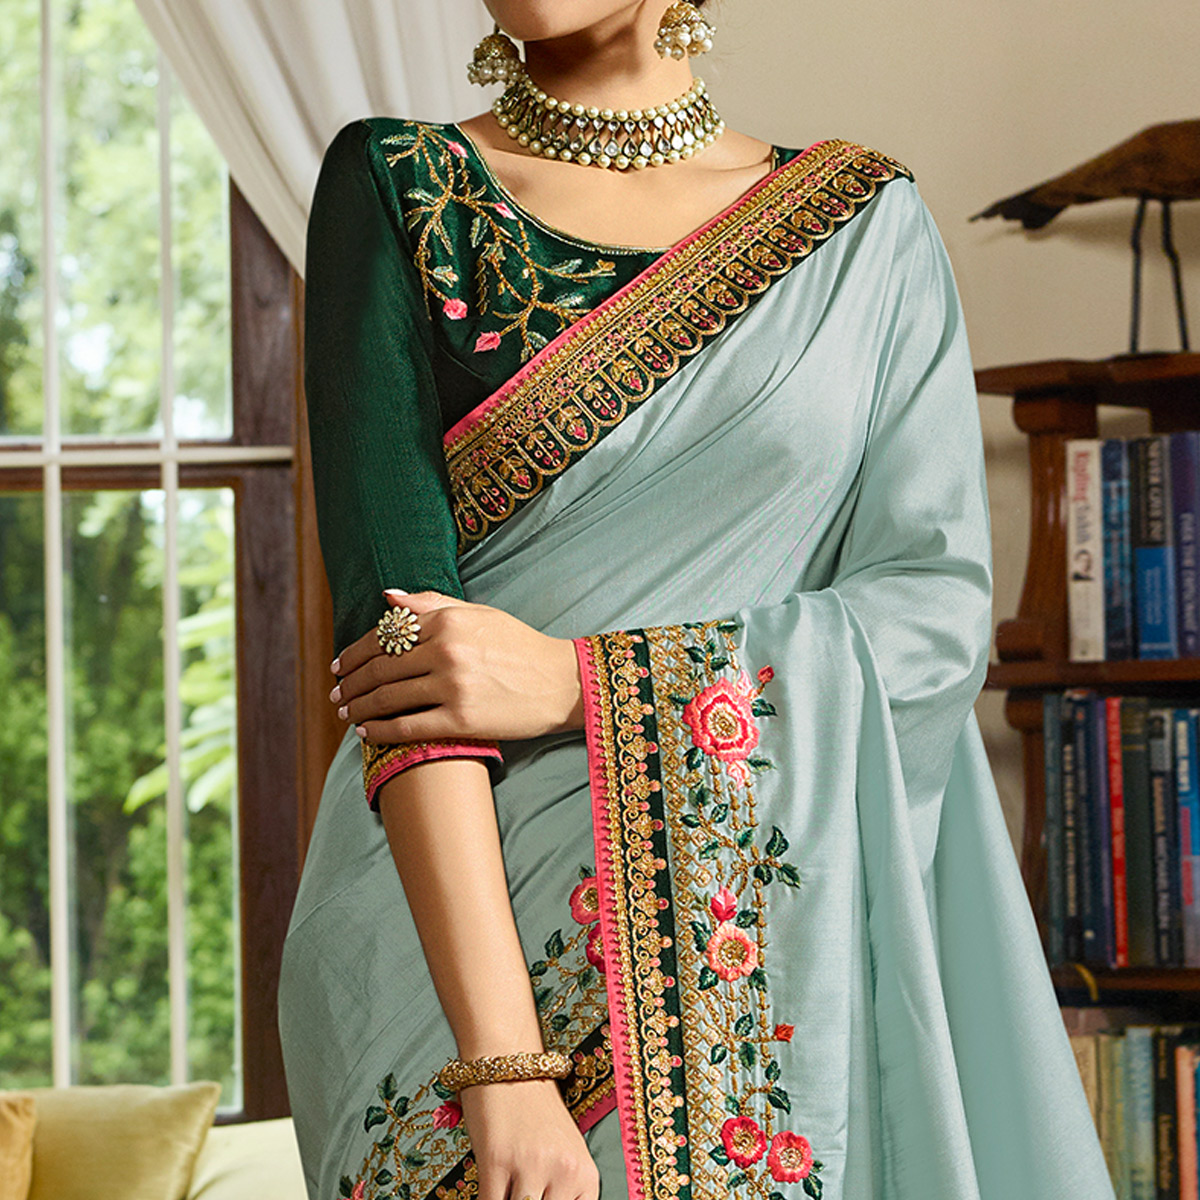 Capricious Dusty Sky Blue Colored Partywear Embroidered Sangam Thai Silk Saree